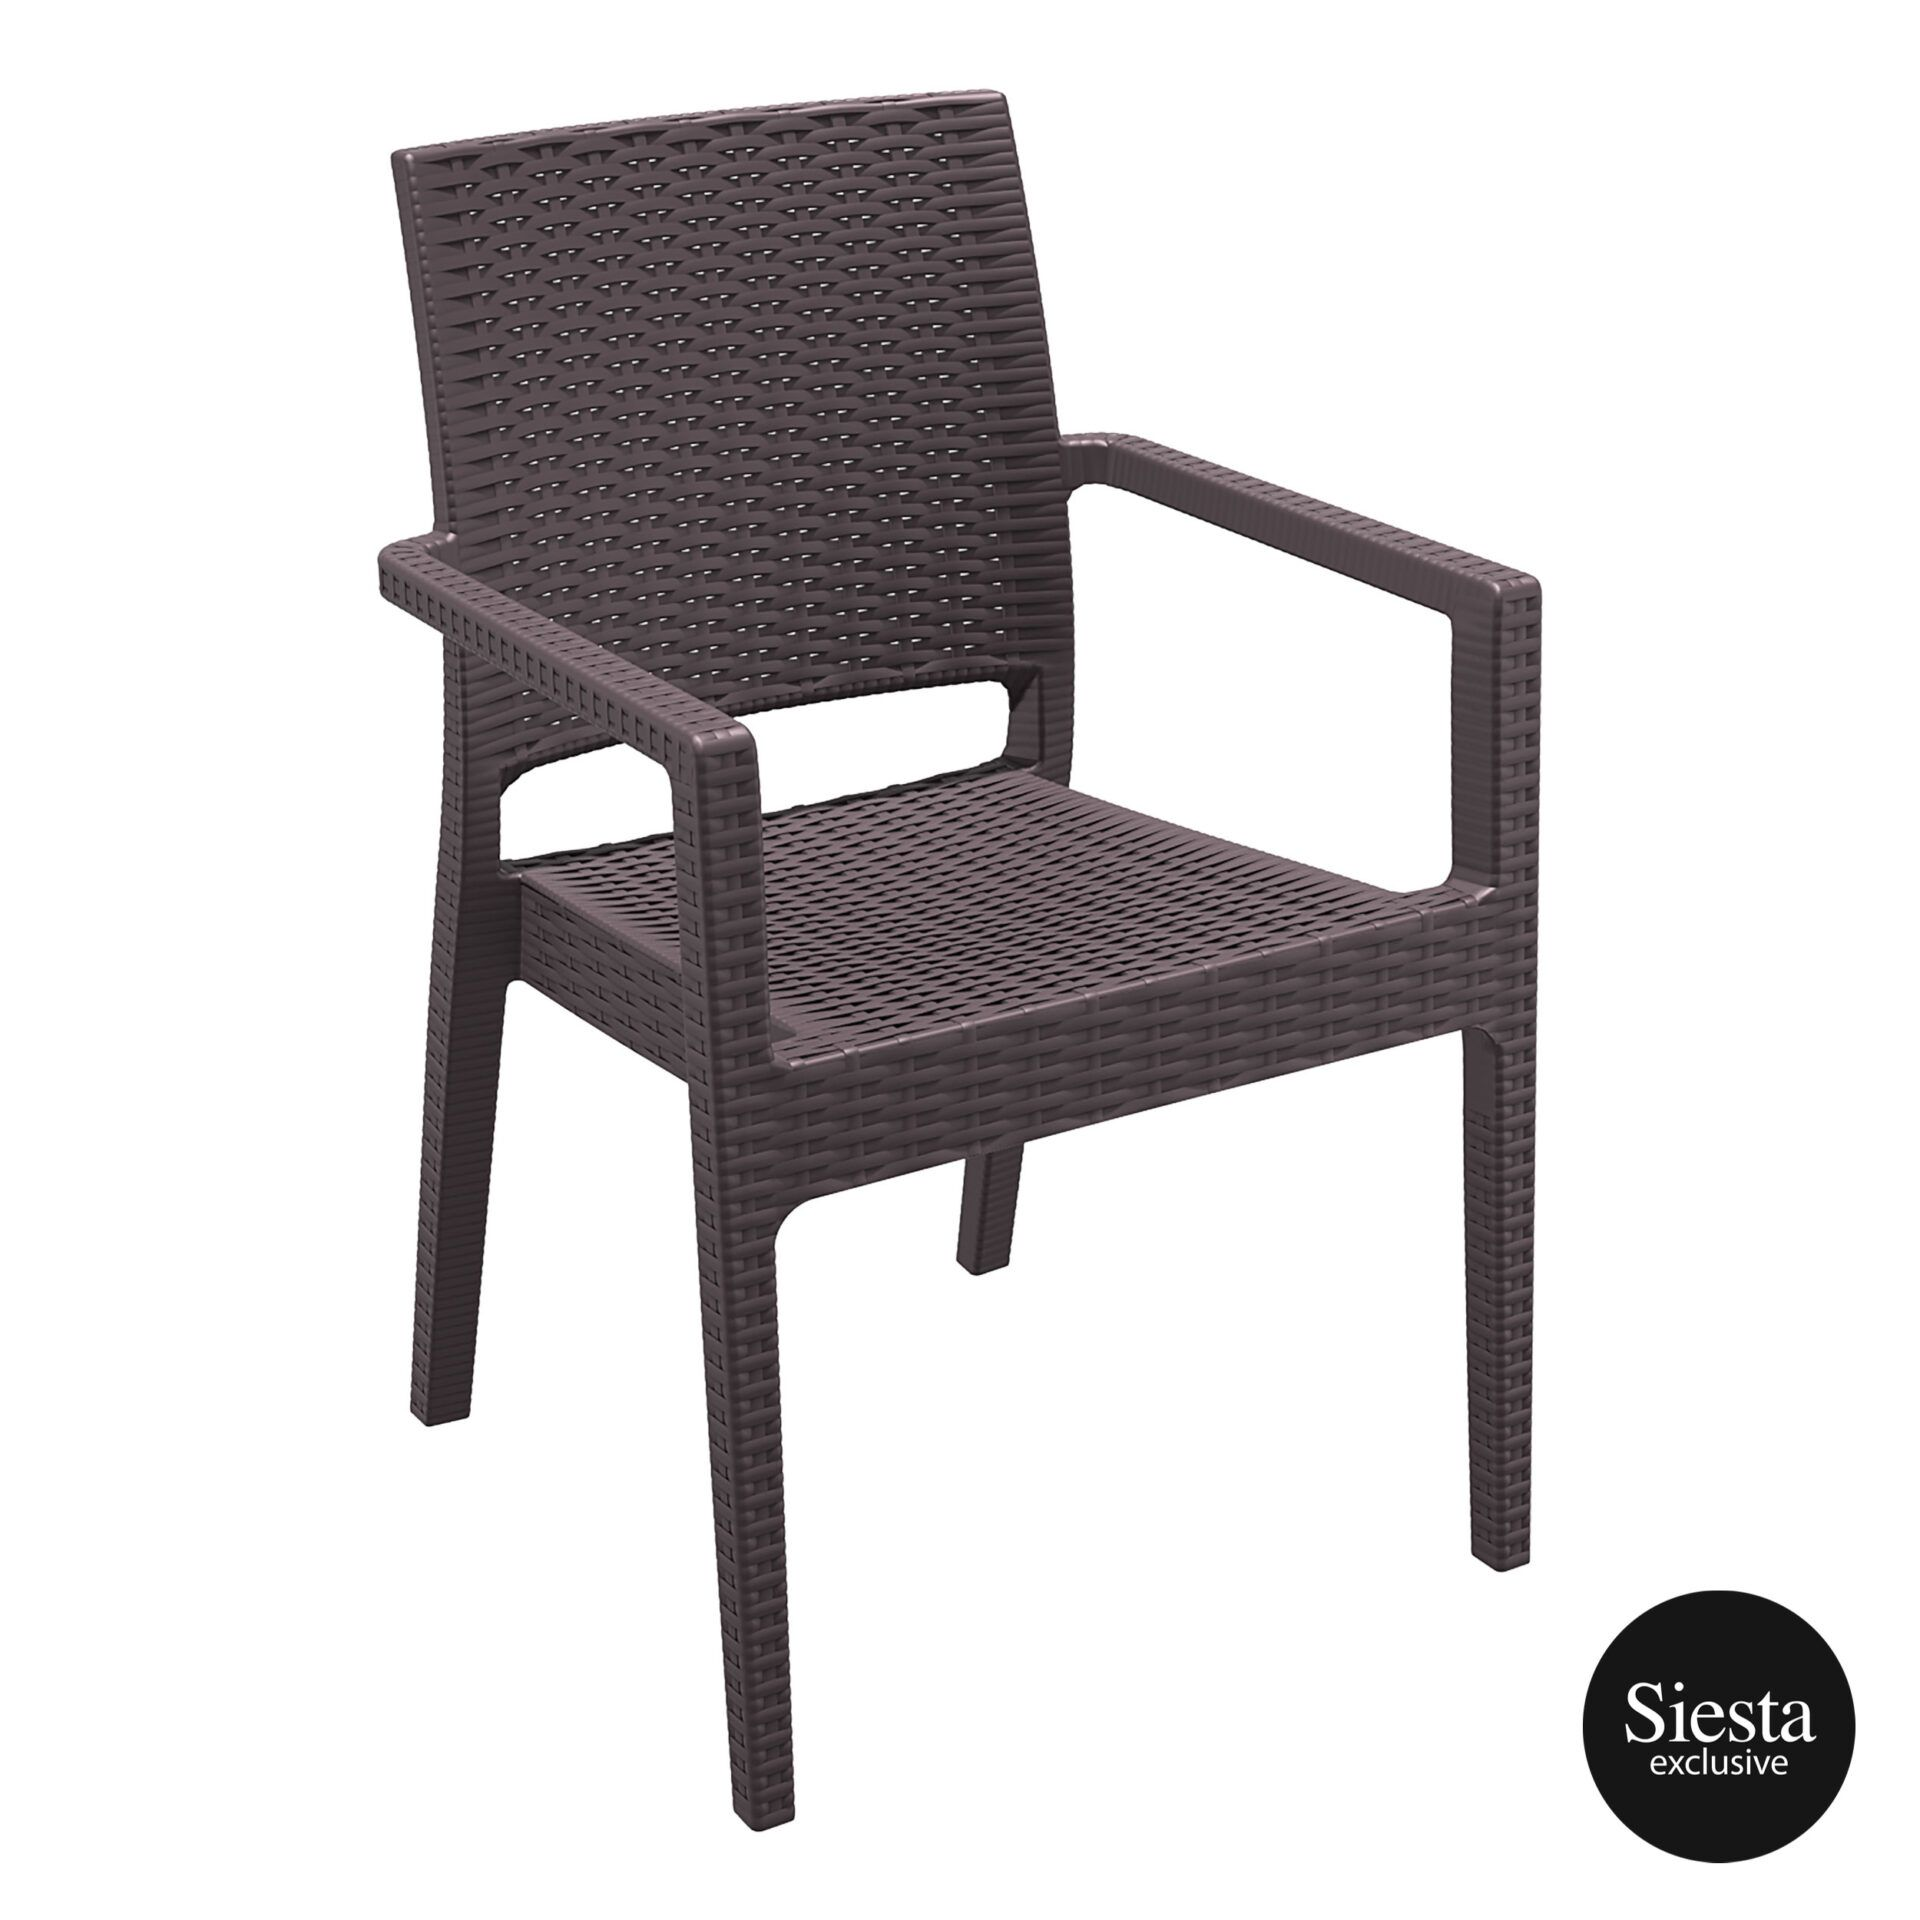 outdoor seating resin rattan ibiza armchair brown front side 2